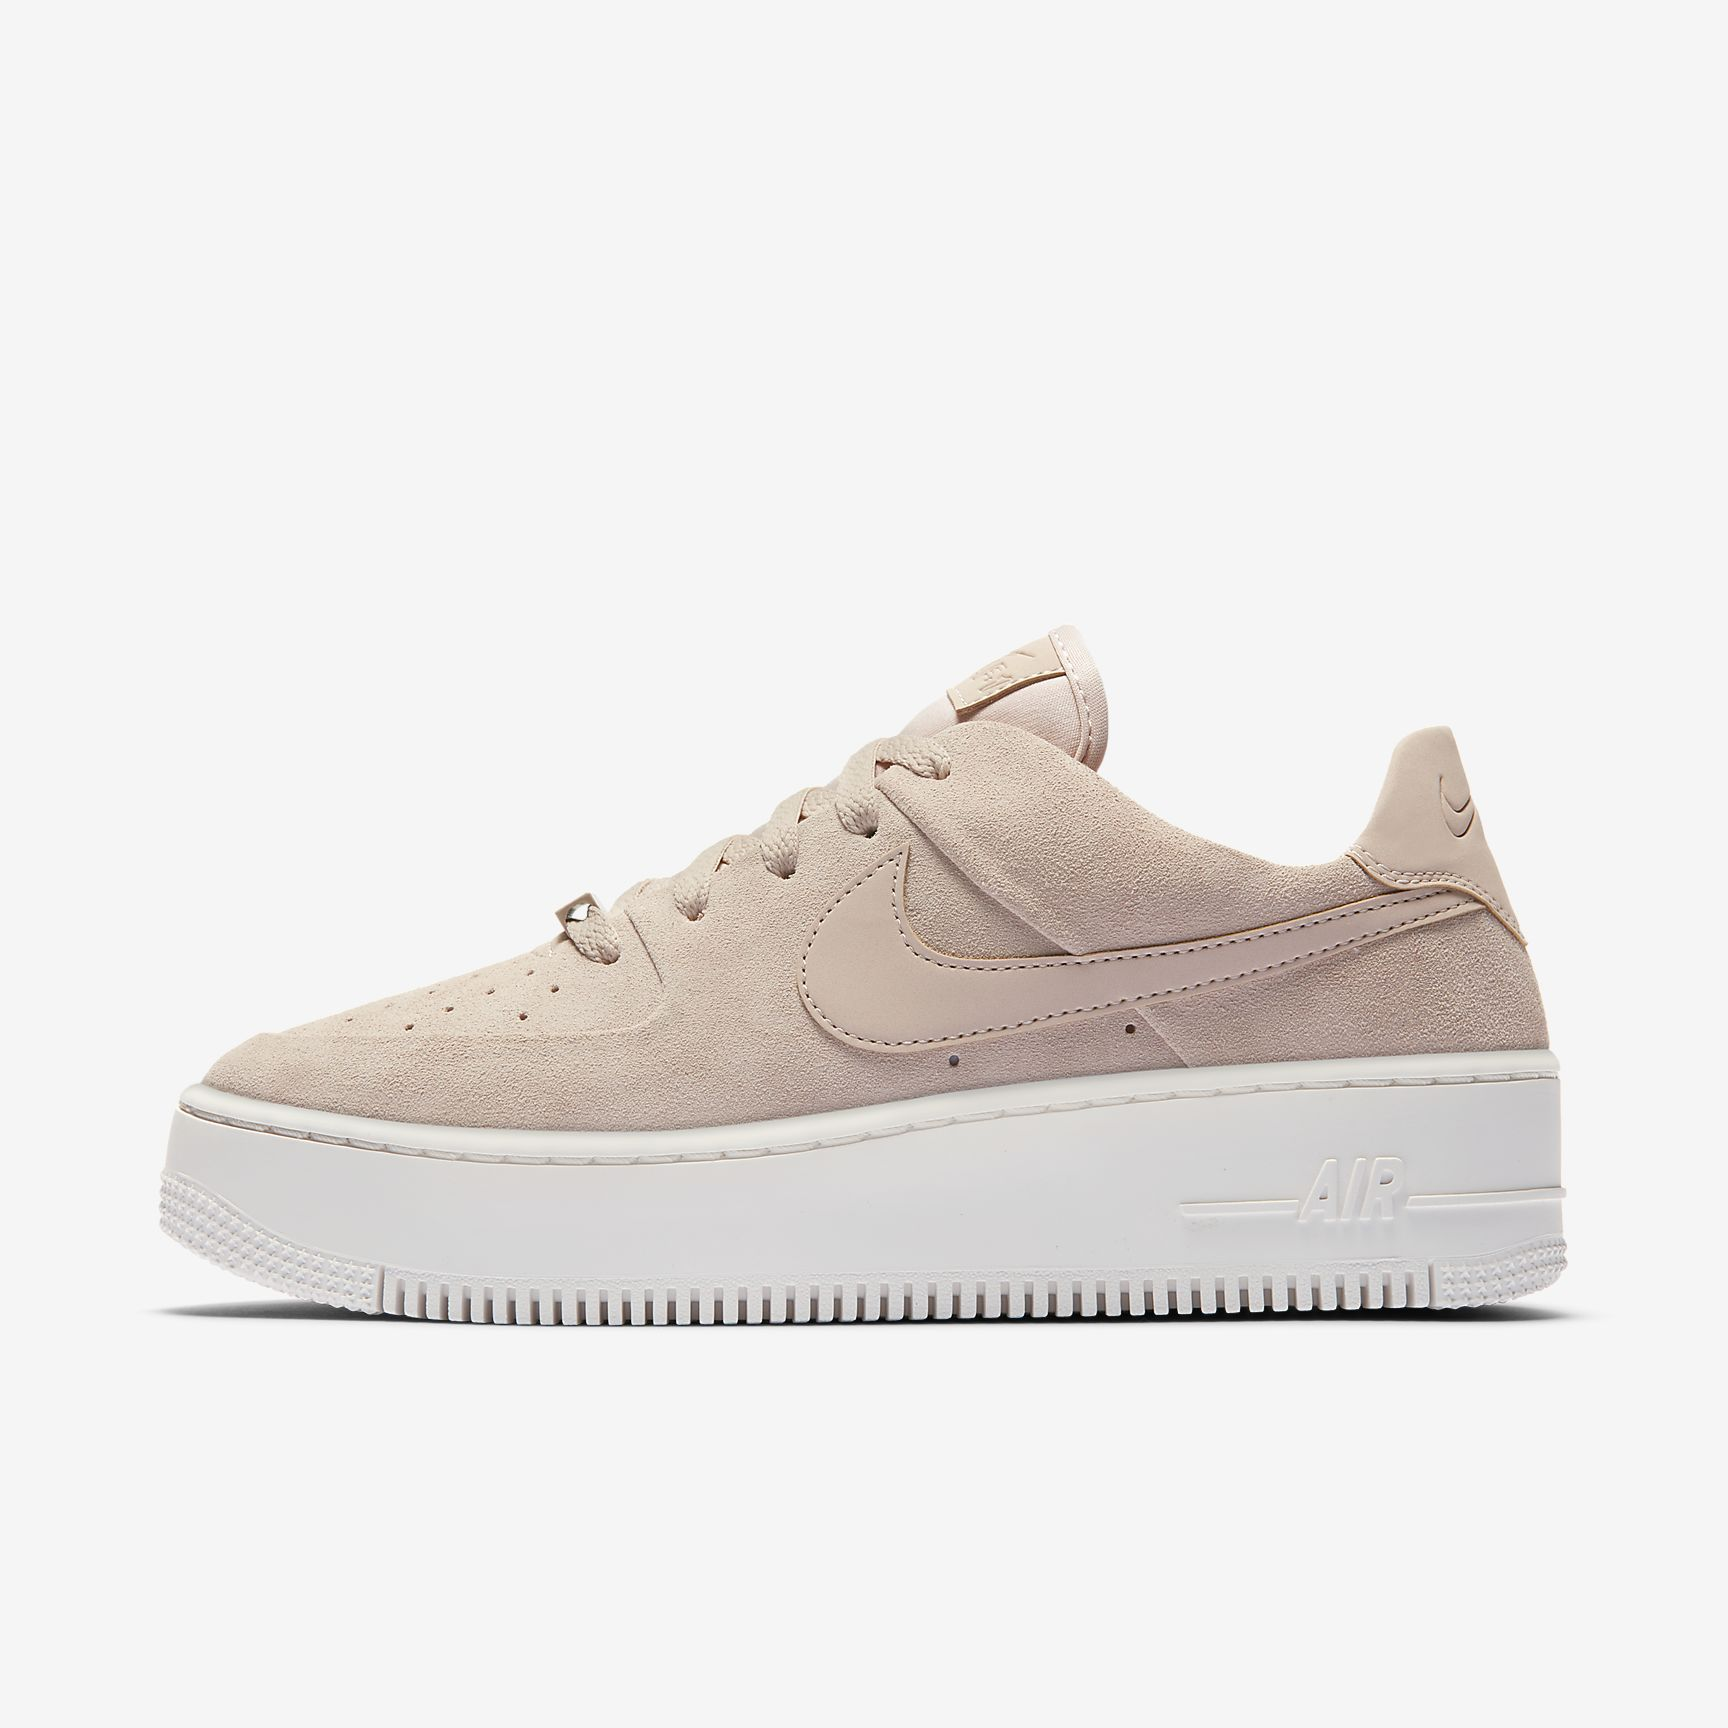 4942e3ffd Air Force 1 Sage Low Women s Shoe in 2019